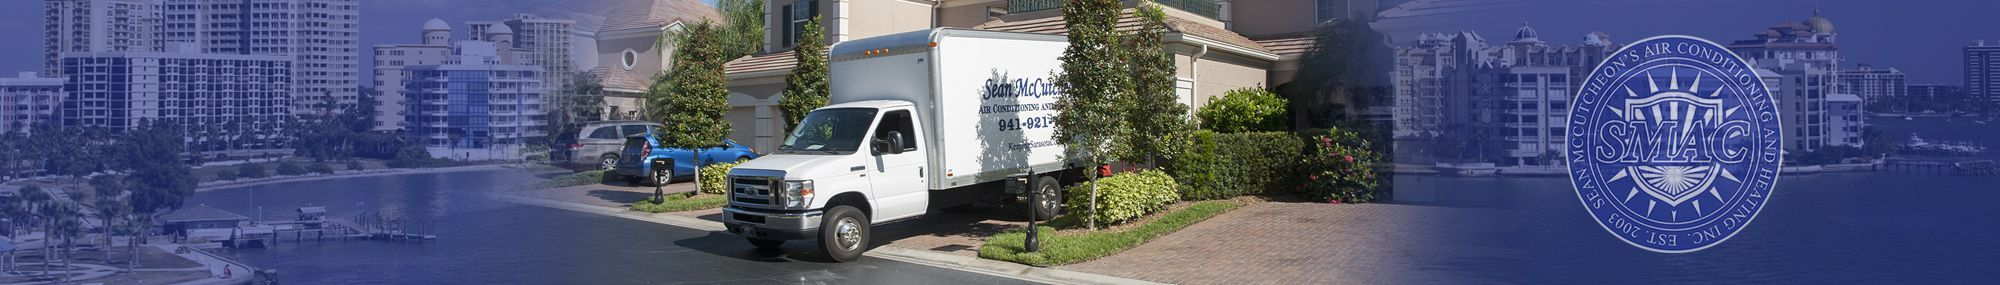 Sarasota air conditioning truck at residence - Sean McCutcheon's Air Conditioning and Heating, Inc. (SMAC)